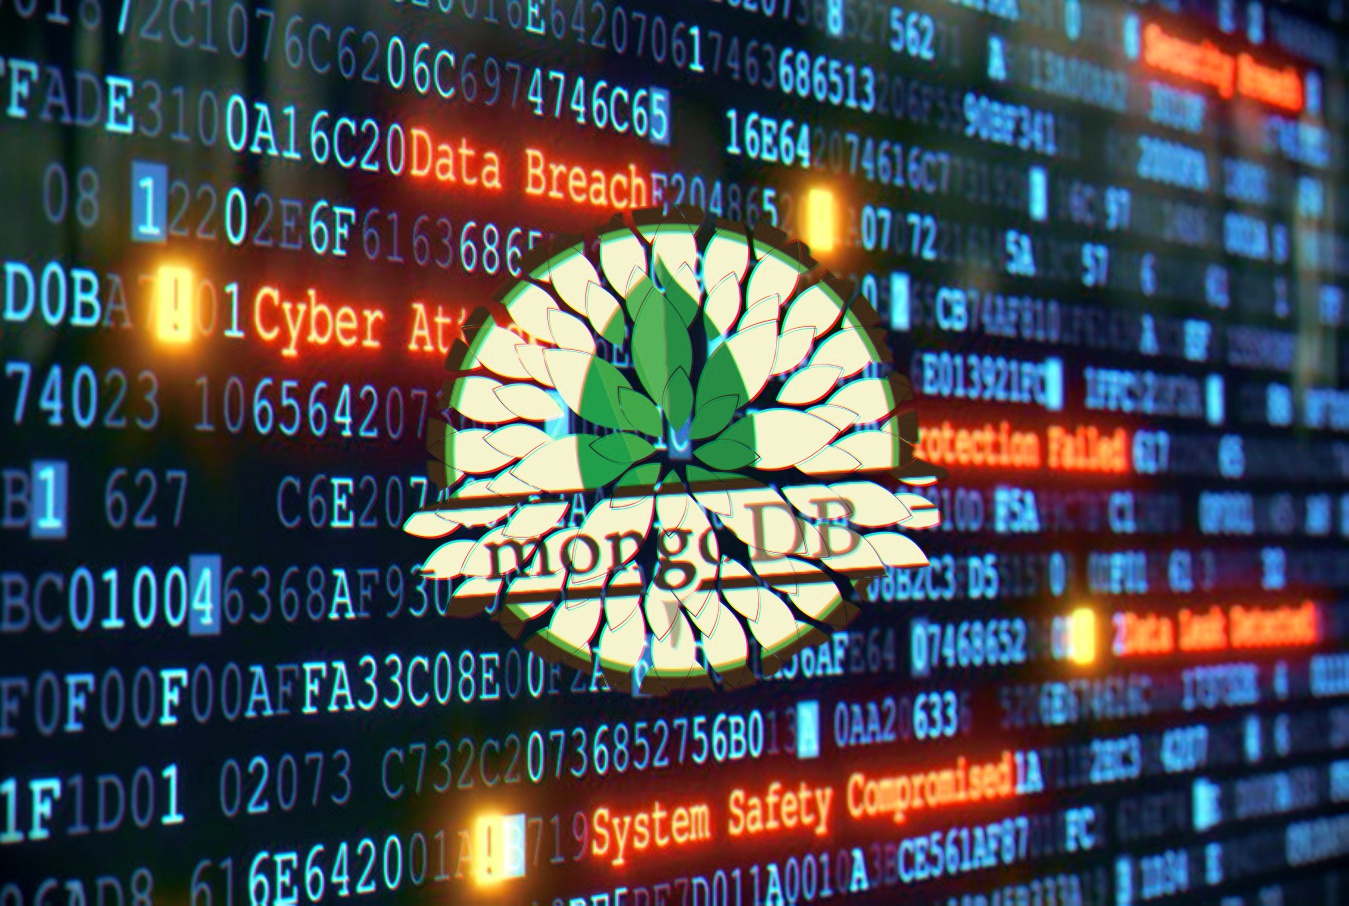 Data-breach-another-mongodb-database-exposes-personal-data-of-66m-users